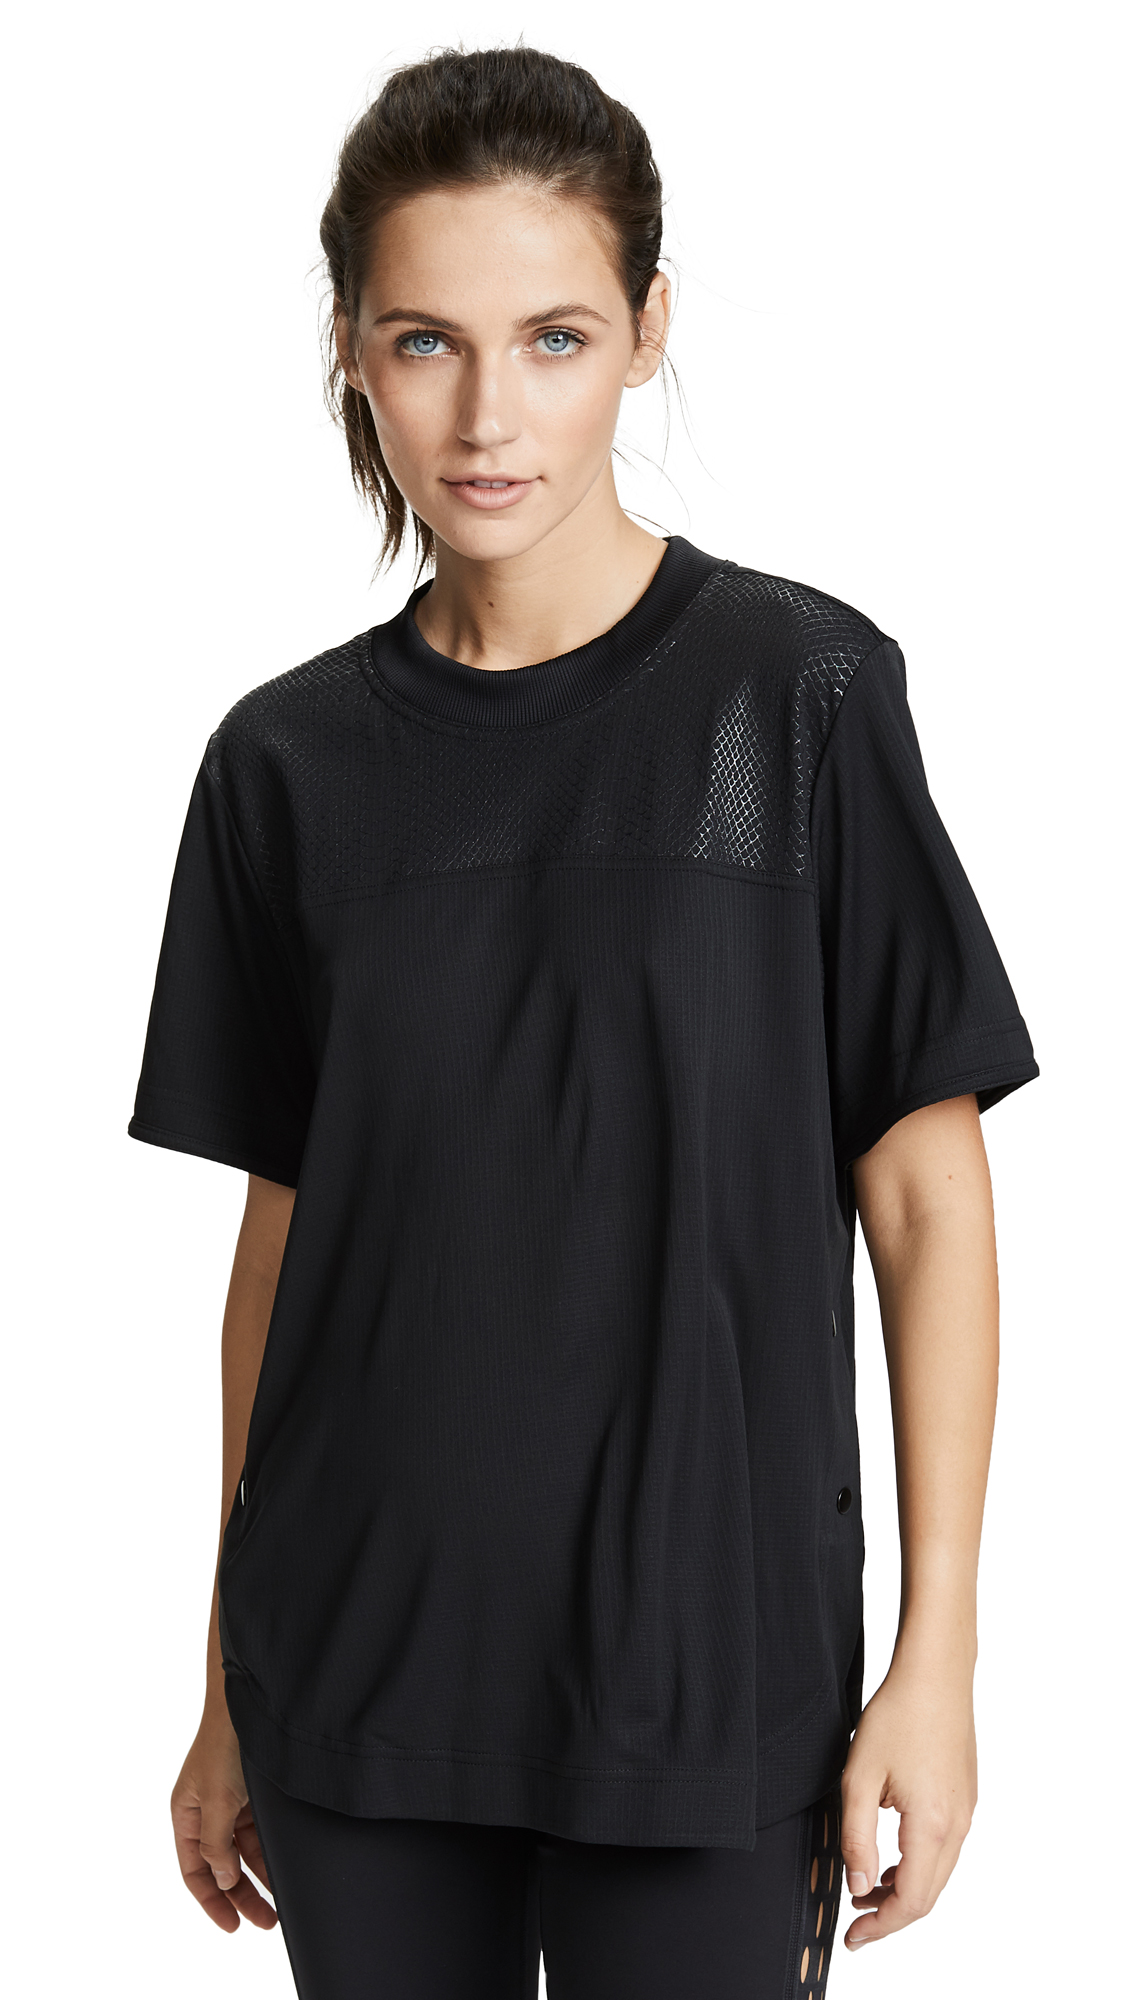 adidas by Stella McCartney Training High Intensity Climachill Tee - Black